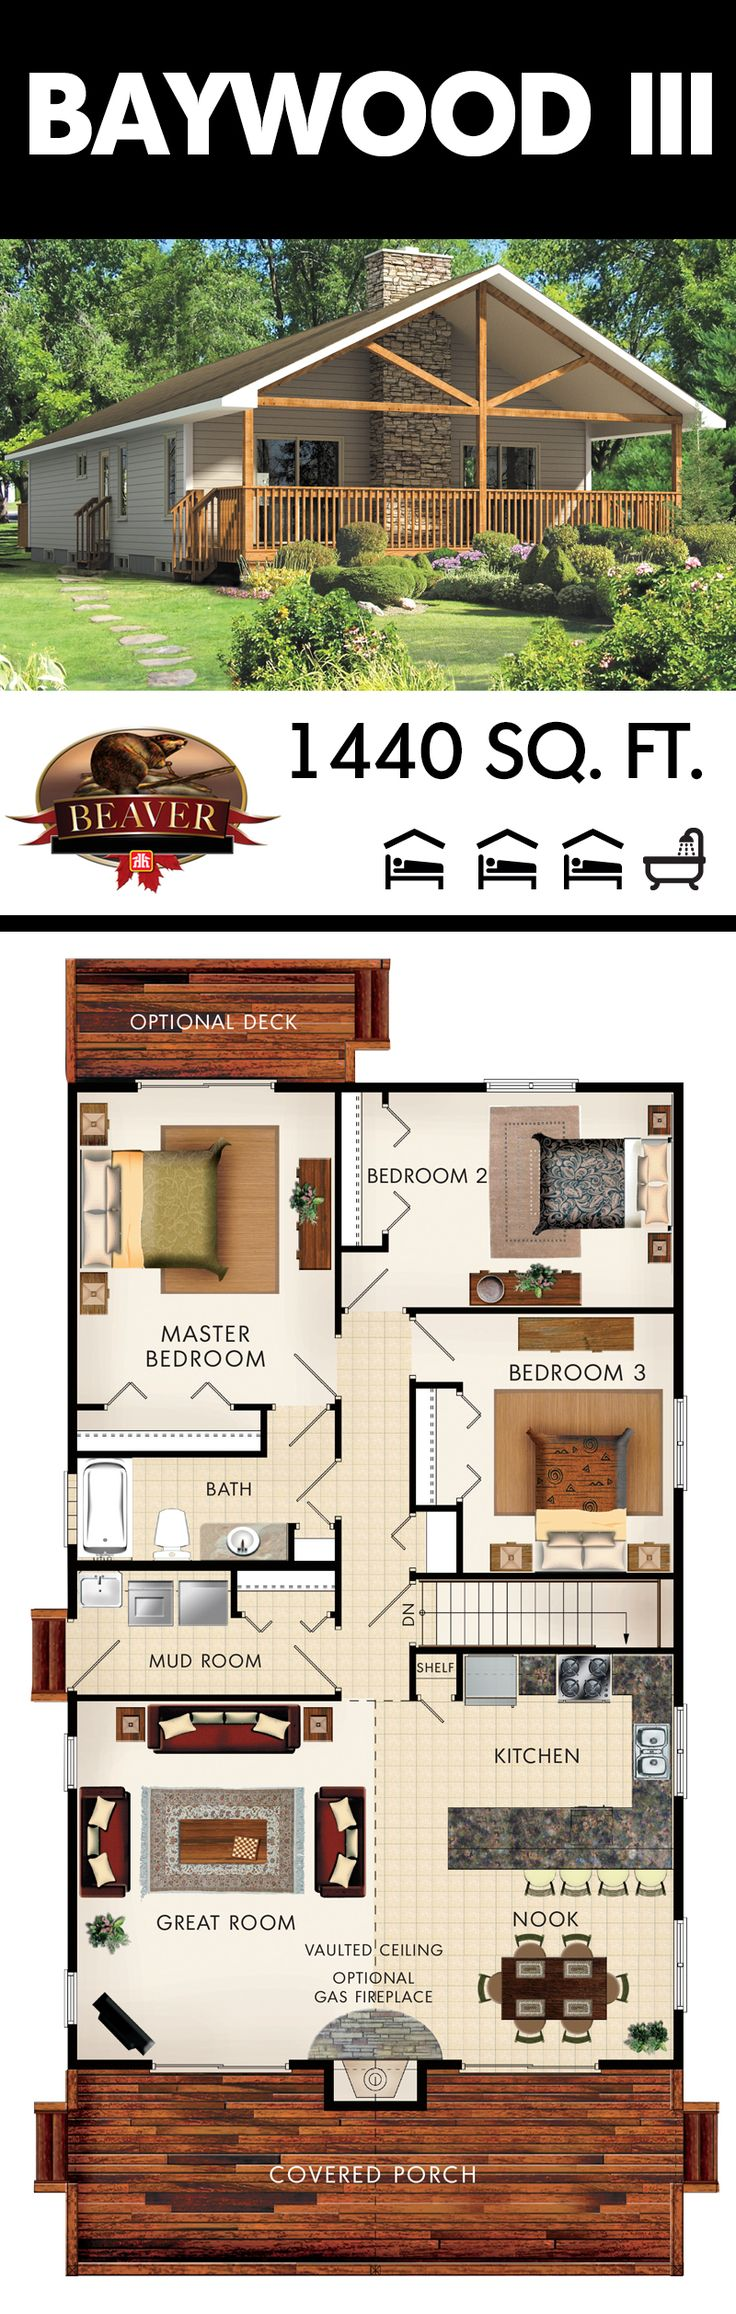 125 best Houseplans - 3 bedroom images on Pinterest | Floor plans ...